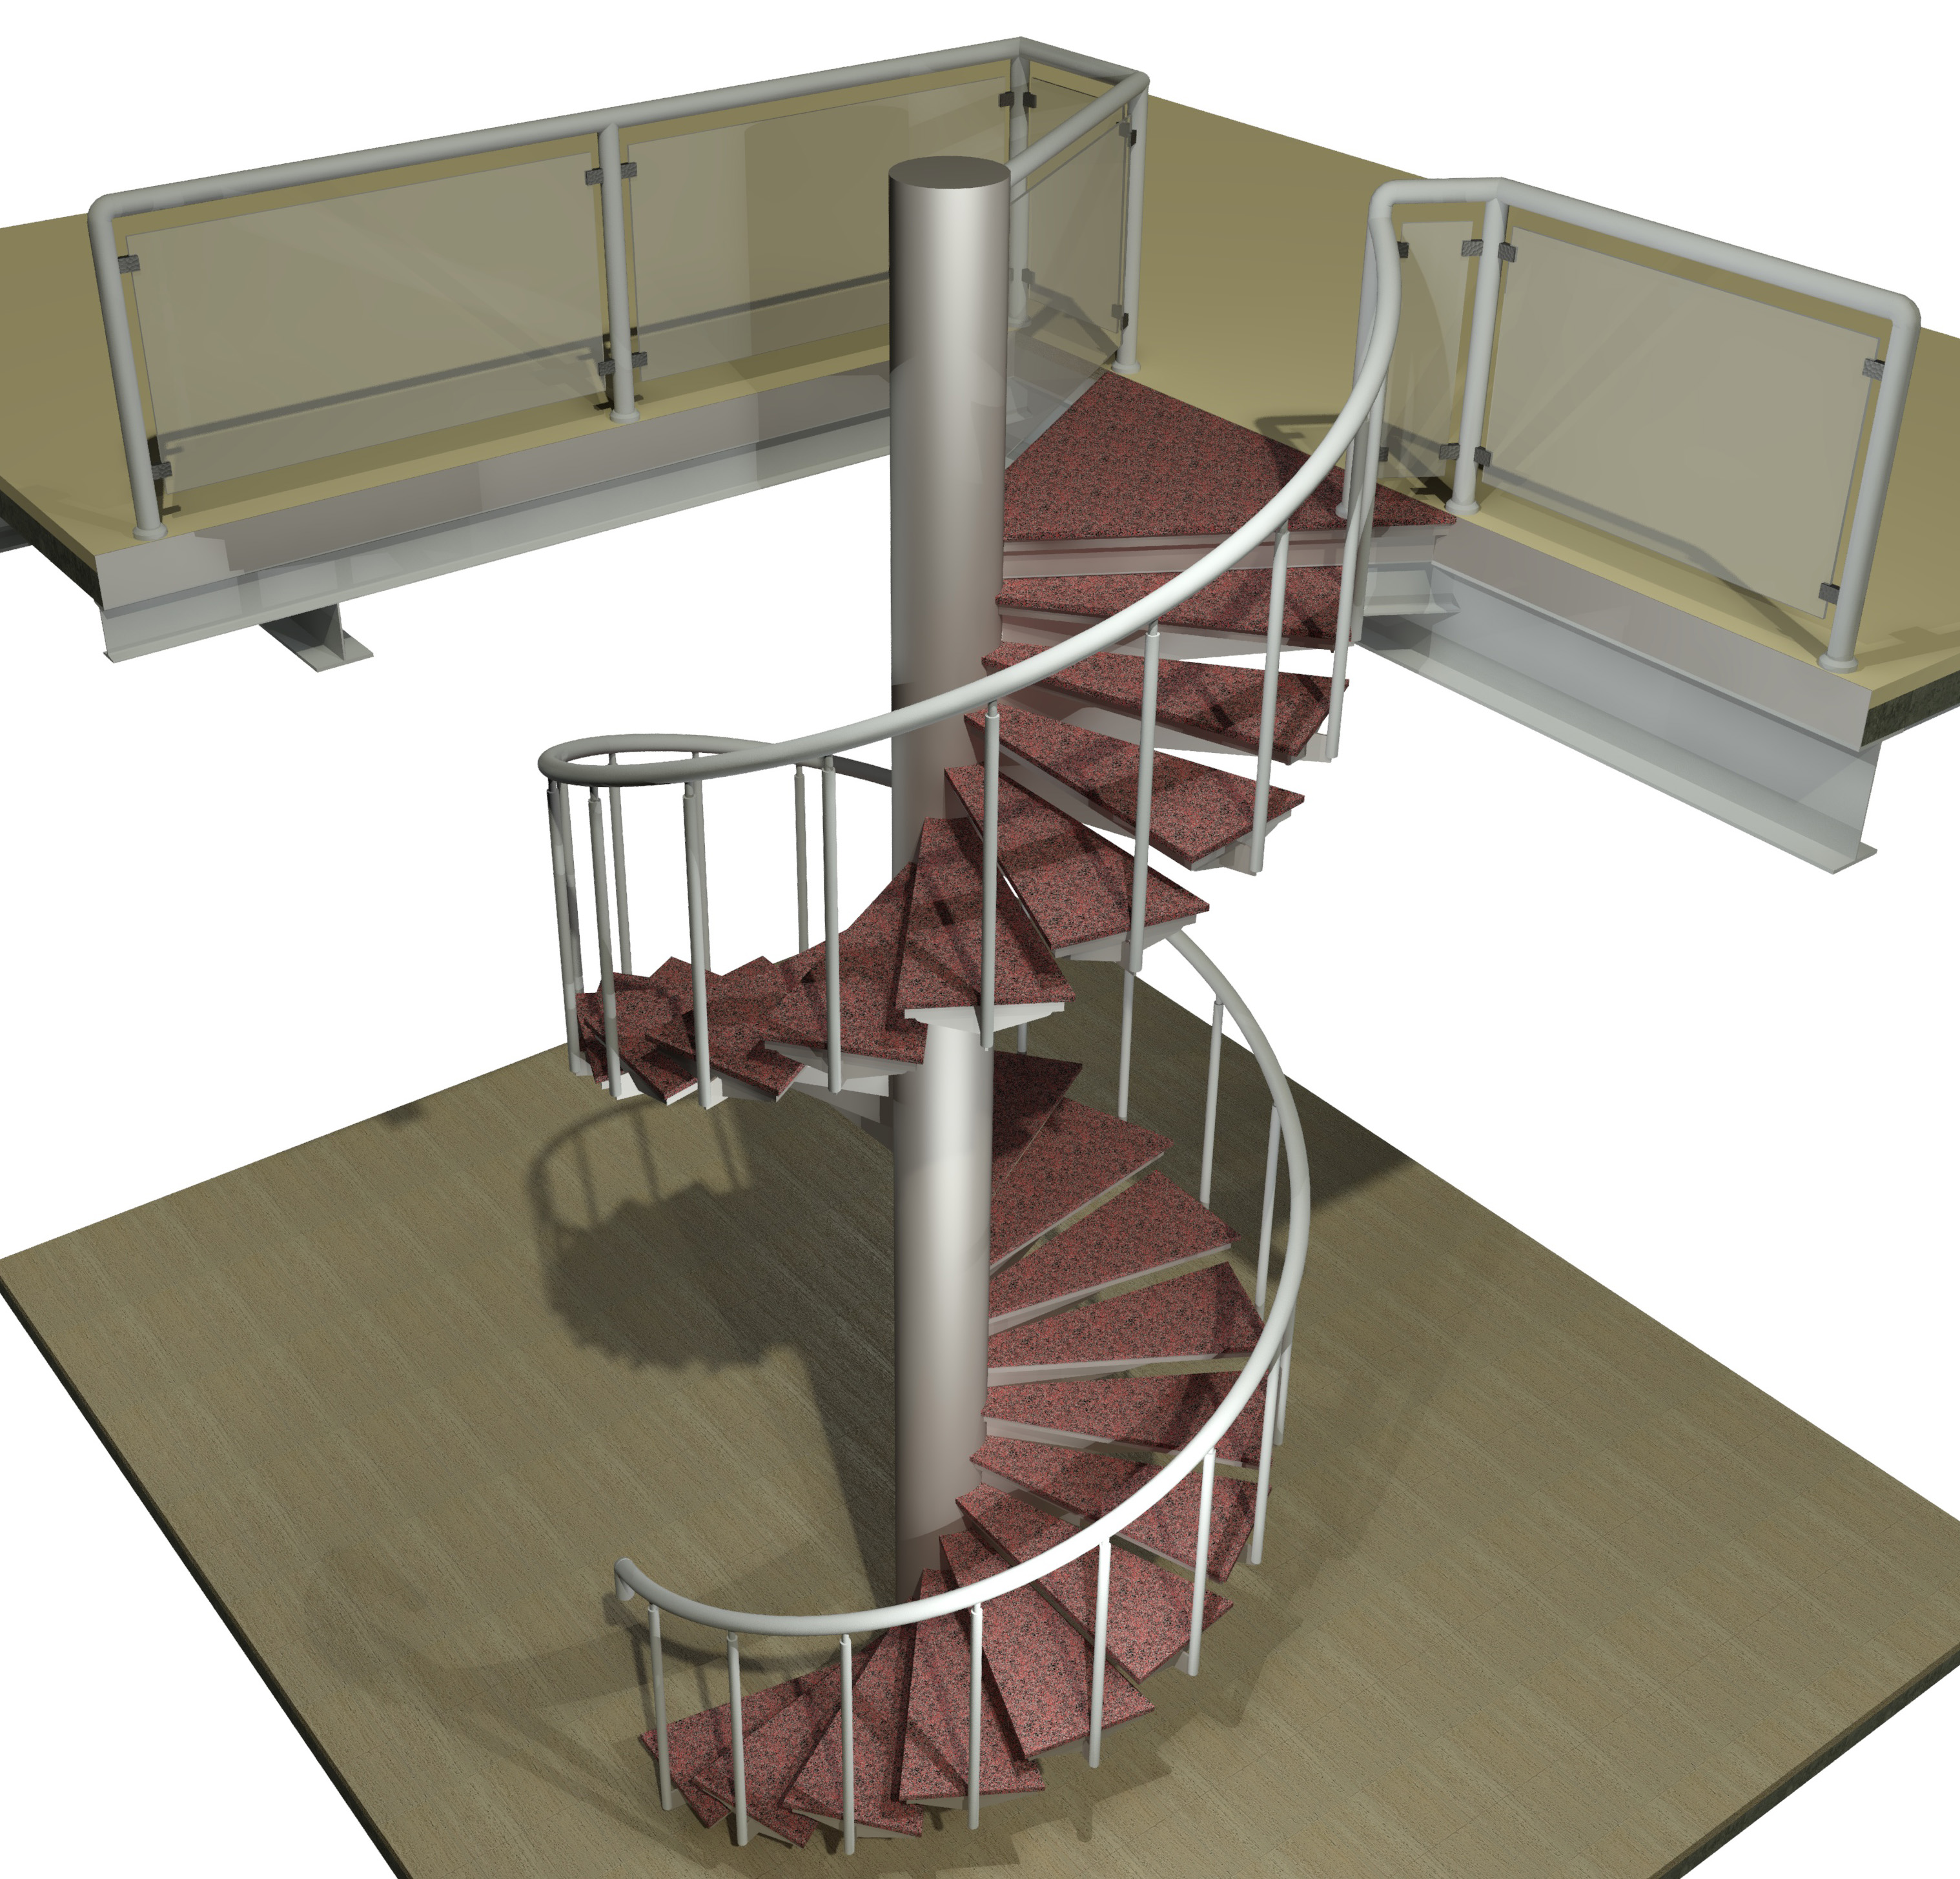 Spiral staircase 3d model cad files dwg files plans Spiral stair cad